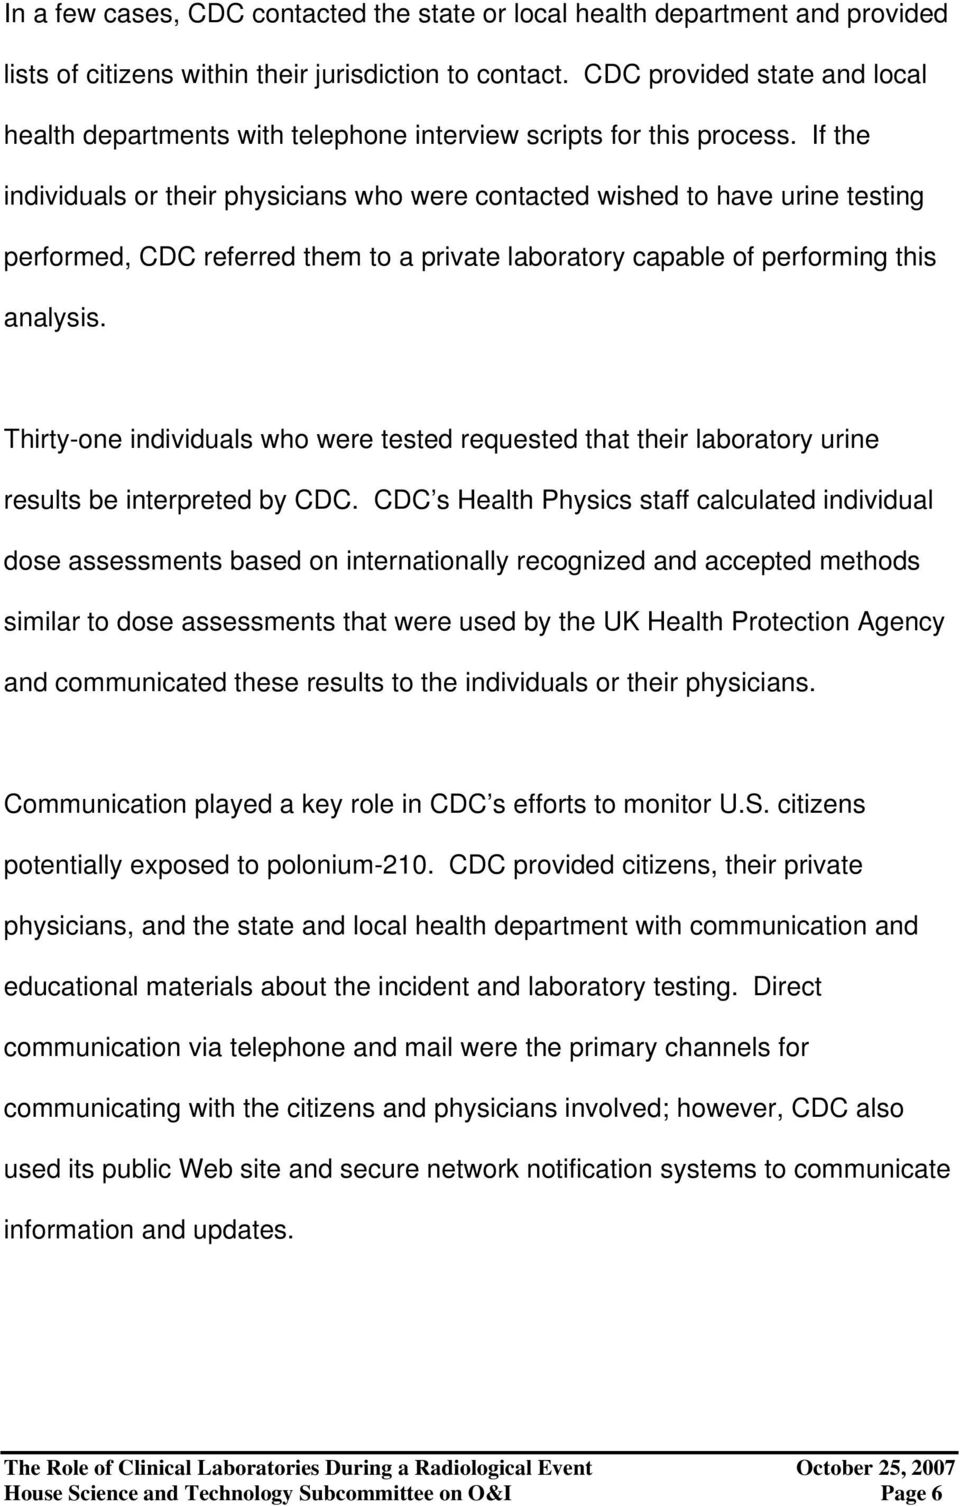 If the individuals or their physicians who were contacted wished to have urine testing performed, CDC referred them to a private laboratory capable of performing this analysis.